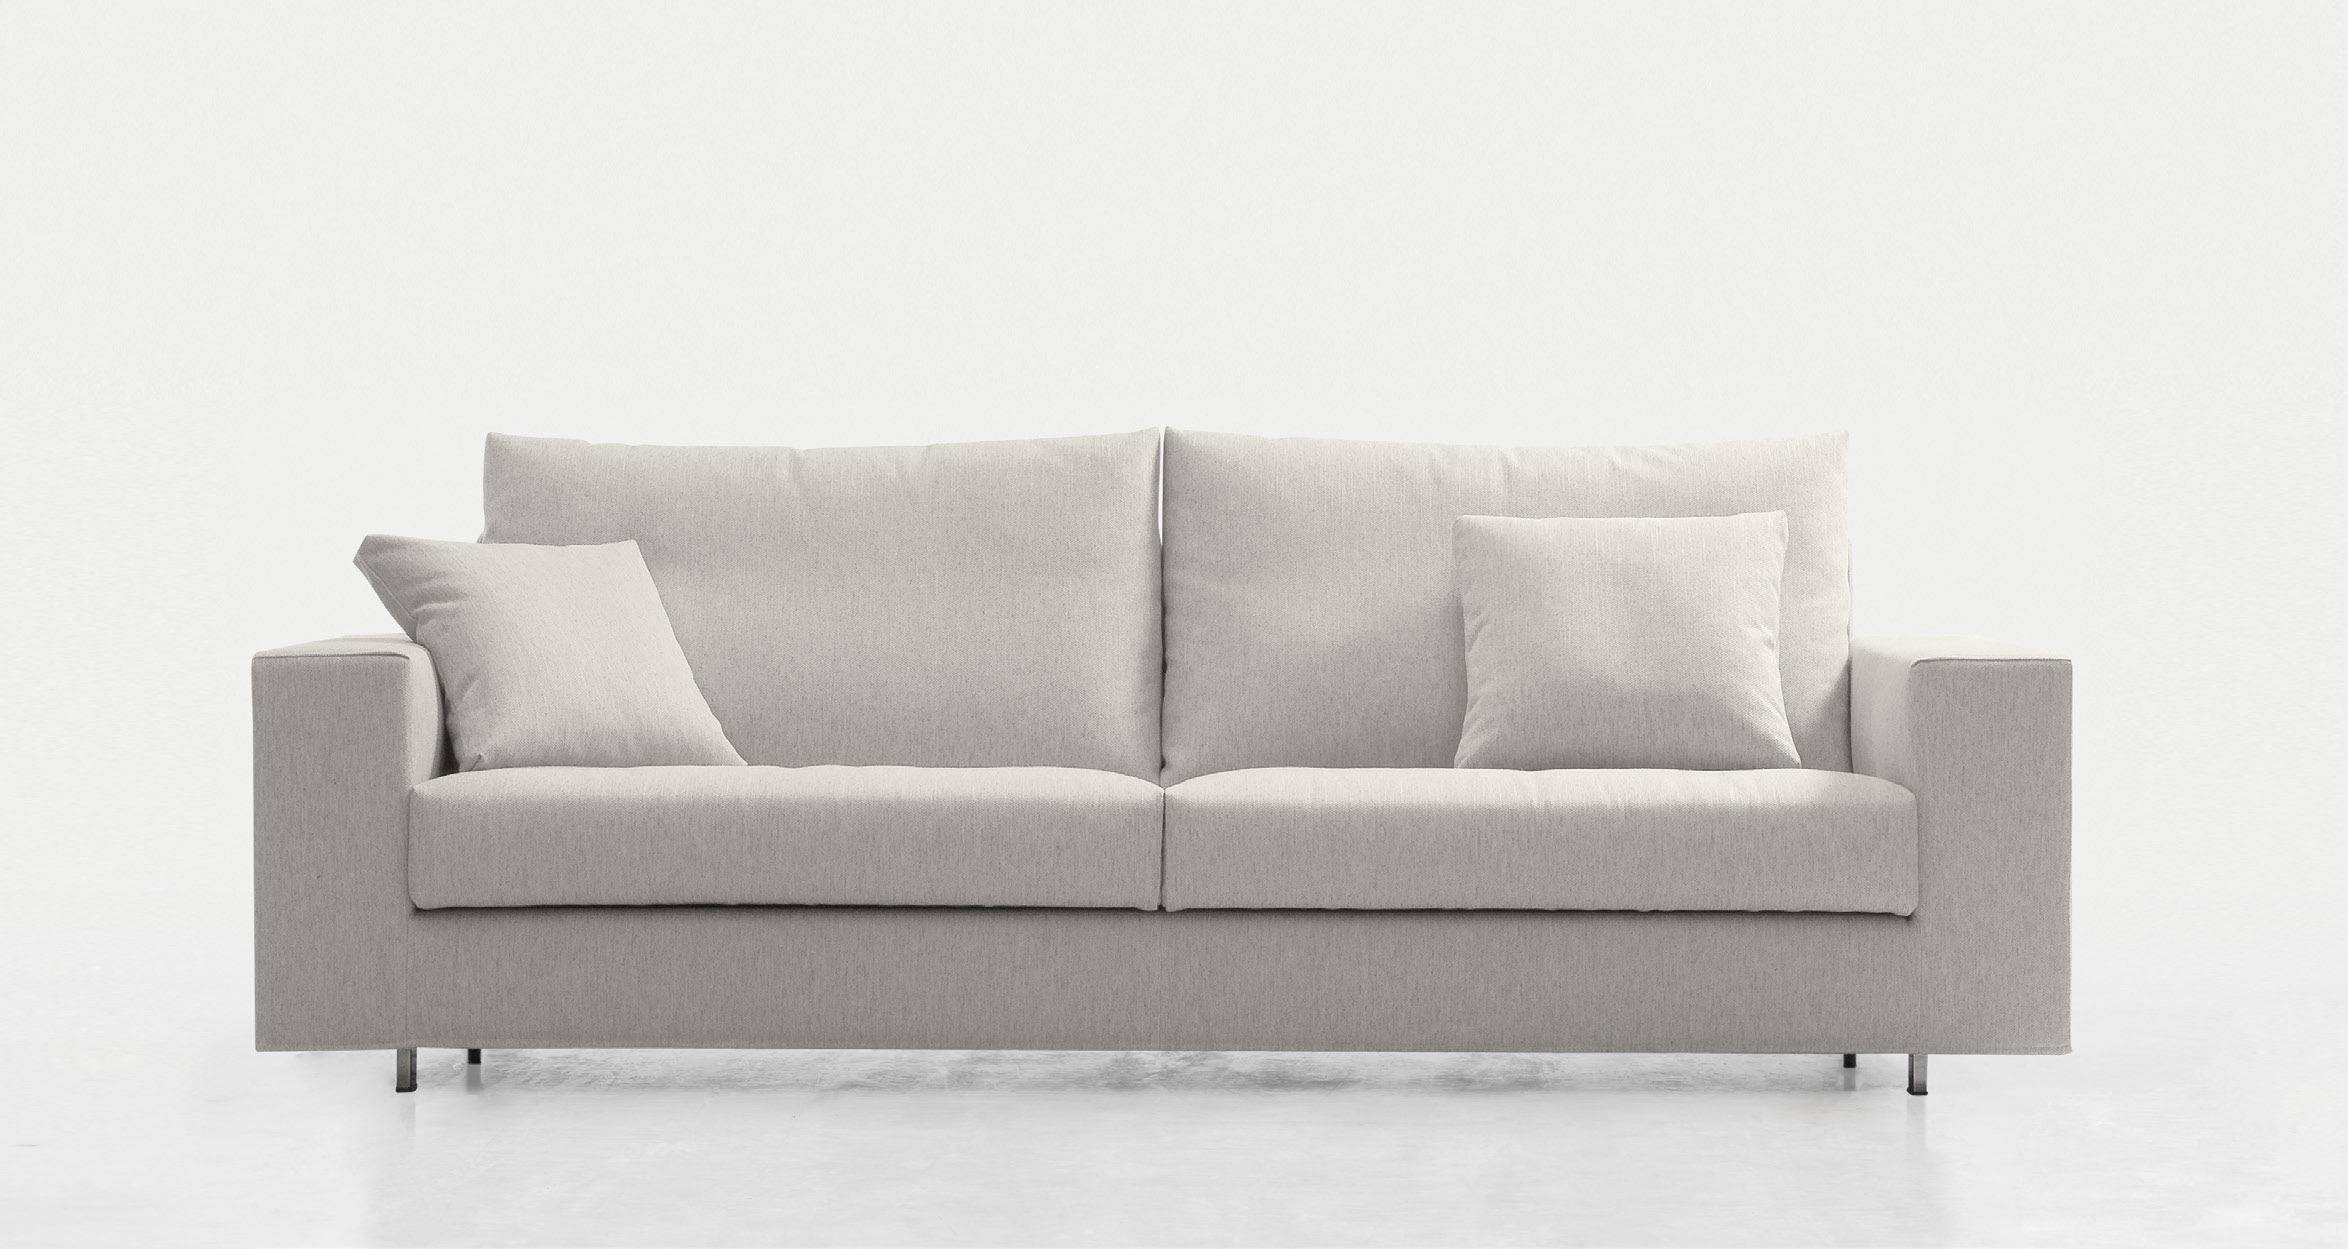 Modular Sofa / Contemporary / Fabric / White - Store - Joquer with regard to Contemporary Fabric Sofas (Image 24 of 30)